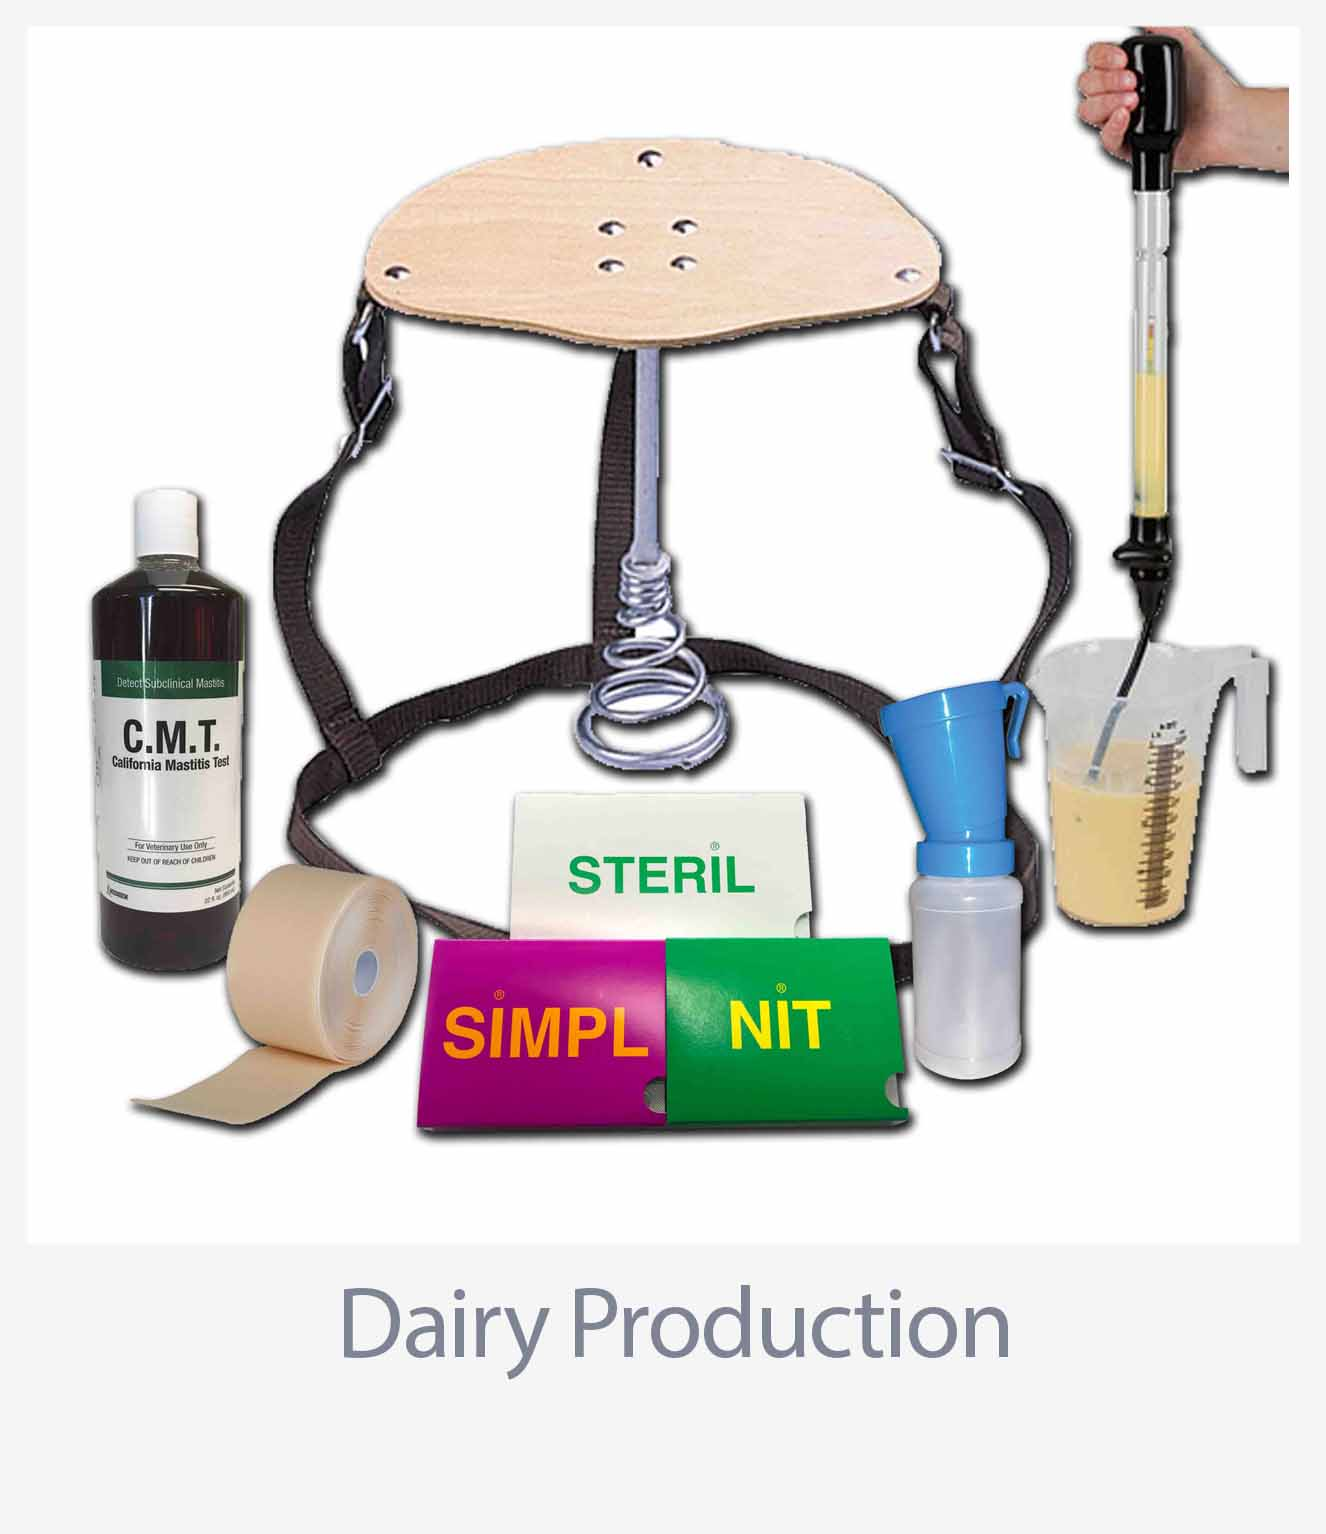 Dairy Production